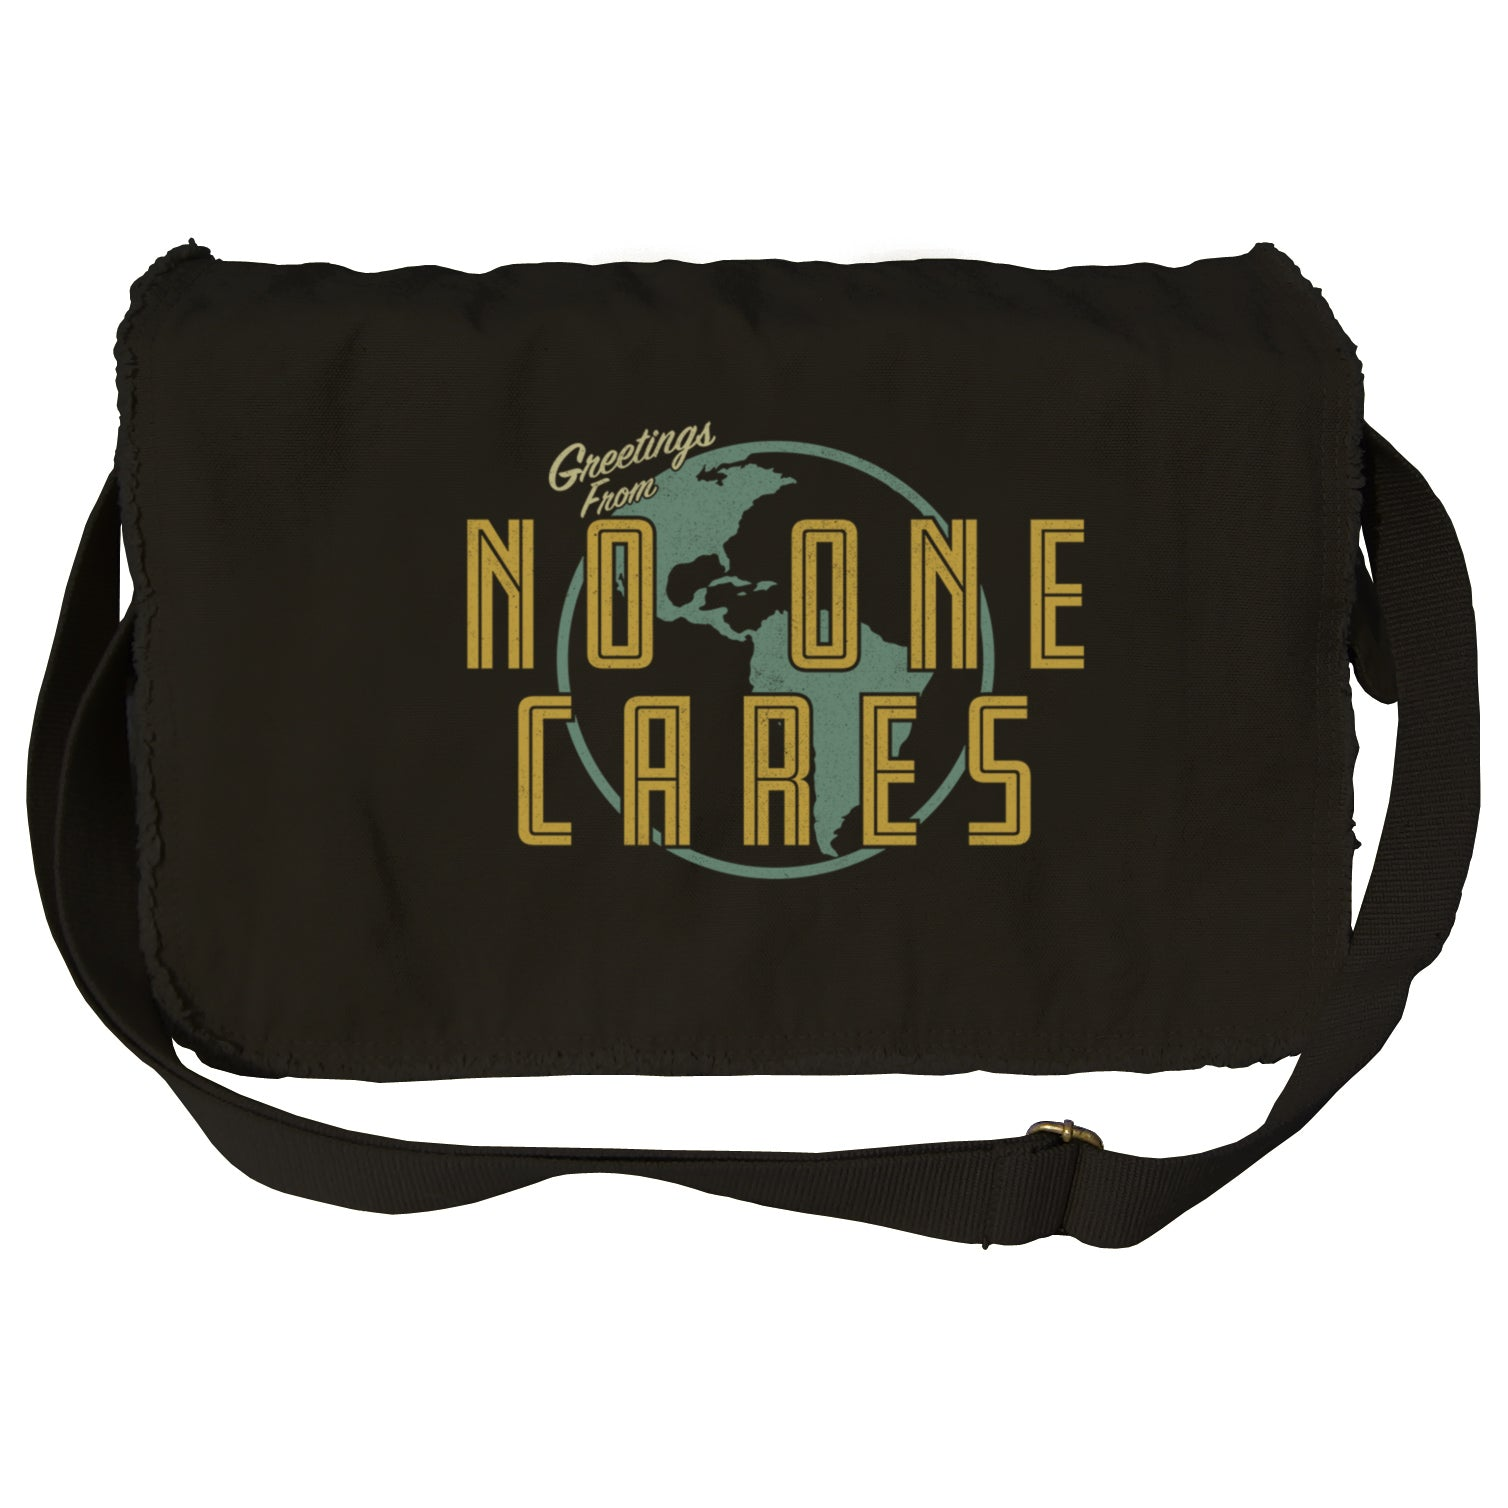 Greetings From No One Cares Messenger Bag